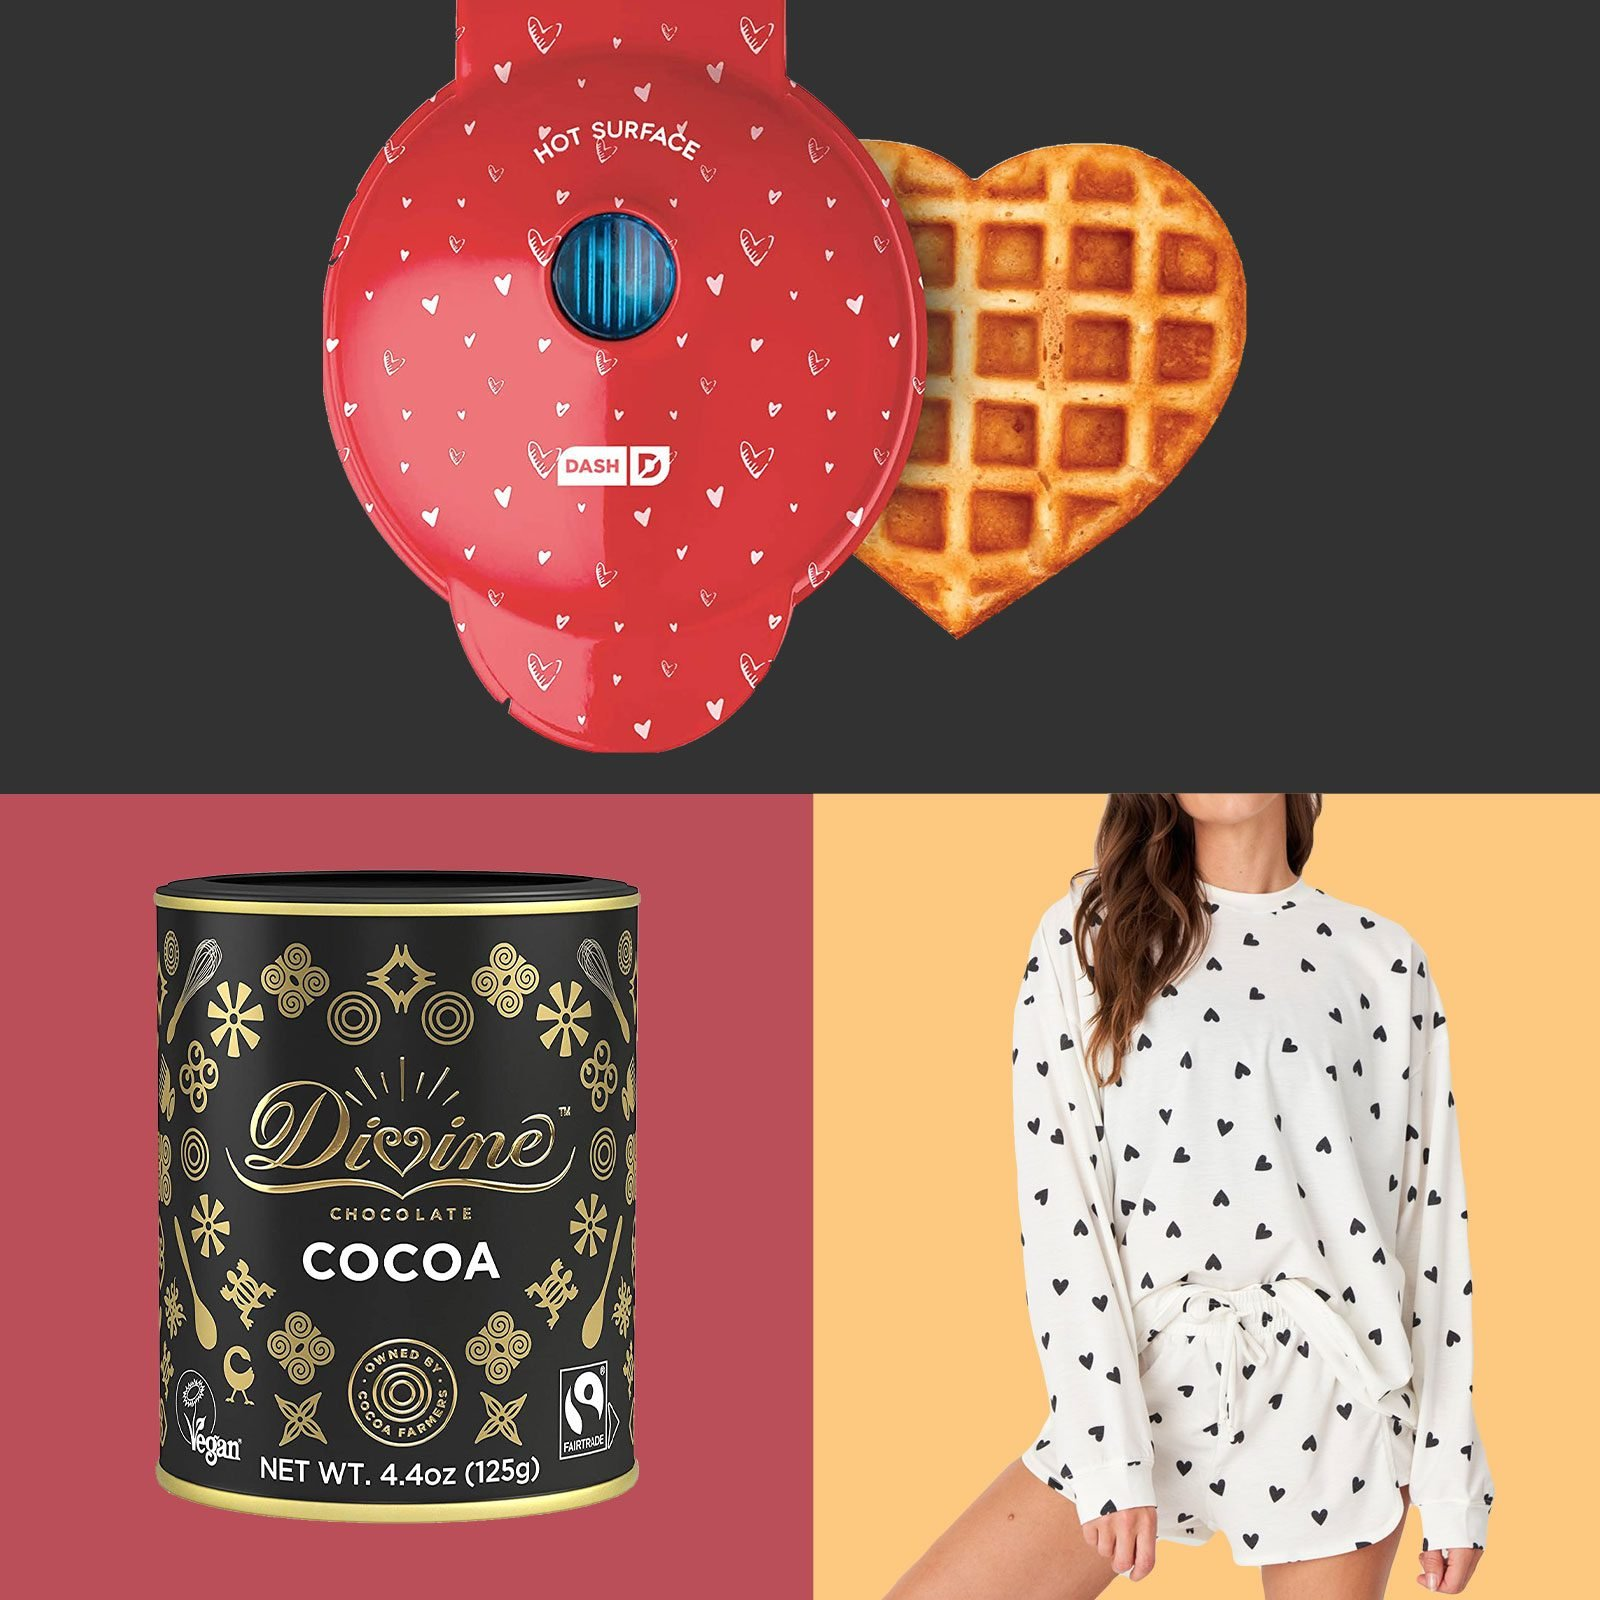 grid of three gifts: heart-shaped waffle iron, hot chocolate mix, and heart pajamas